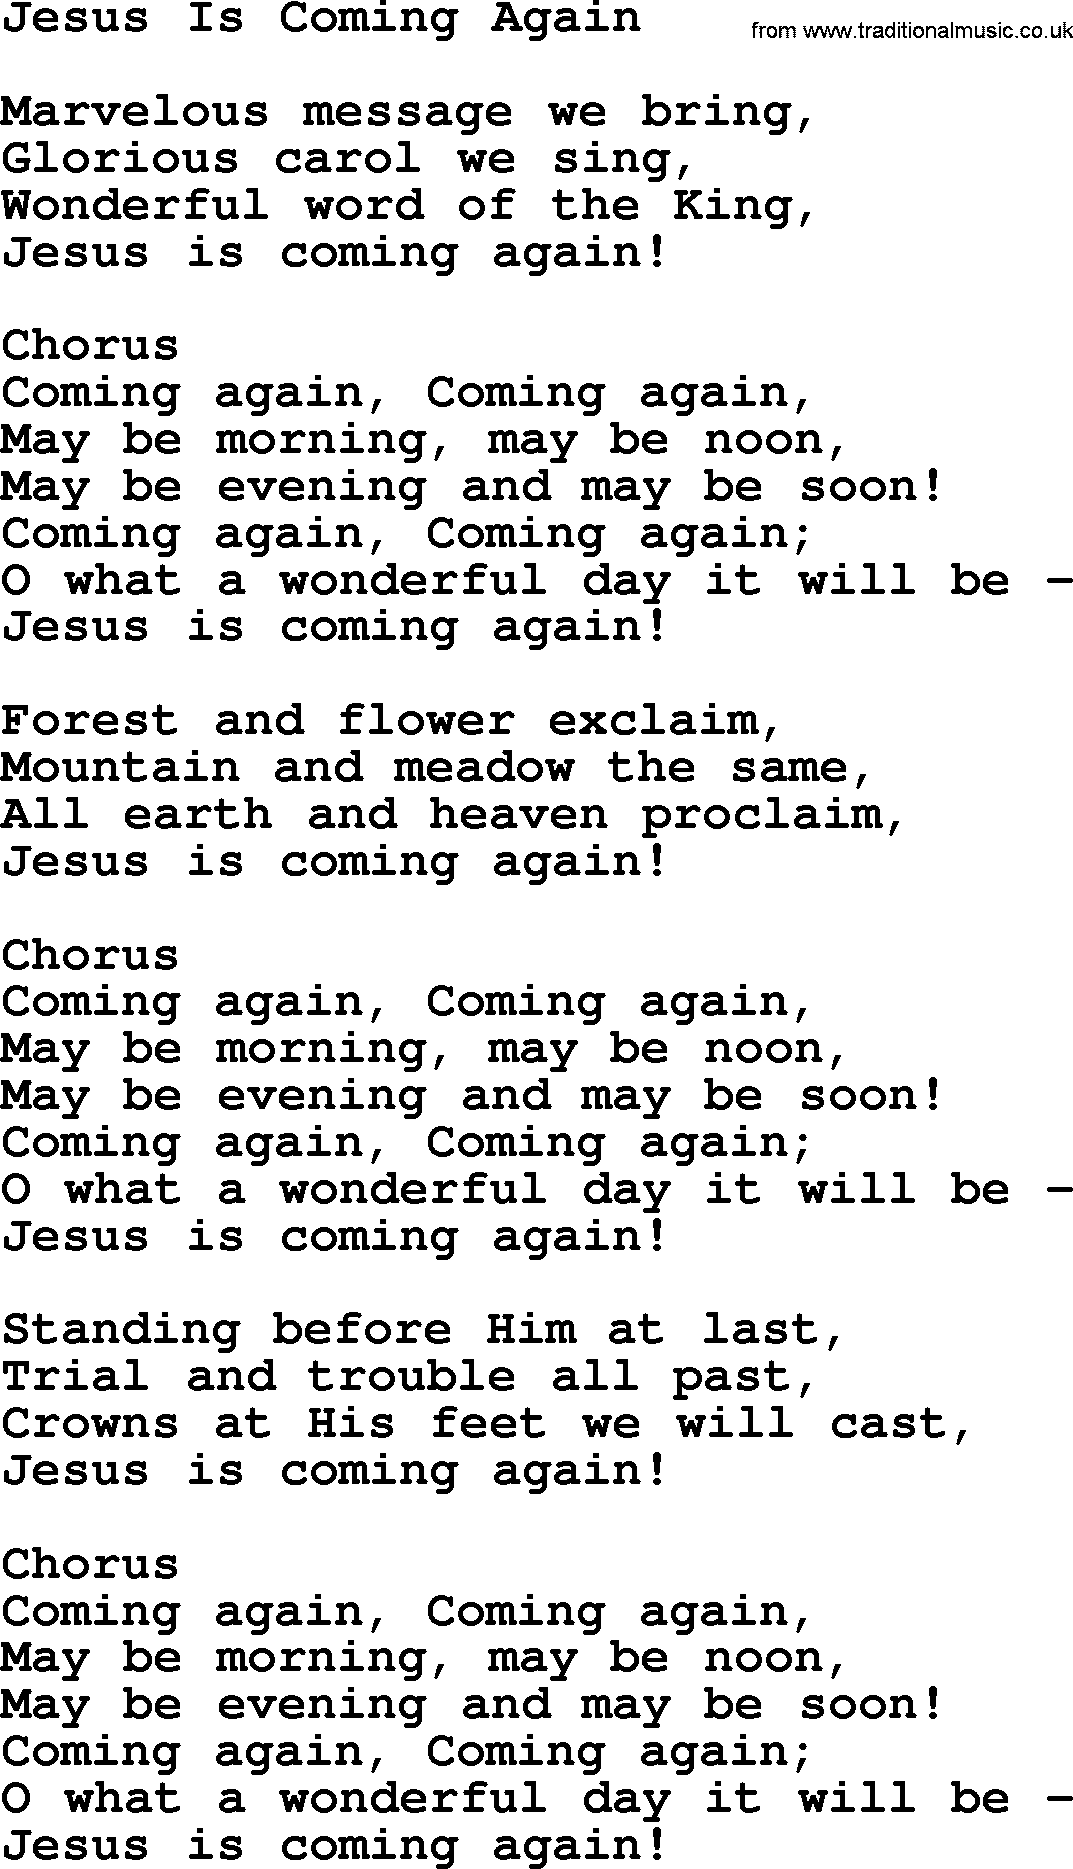 baptist hymnal christian song jesus is coming again